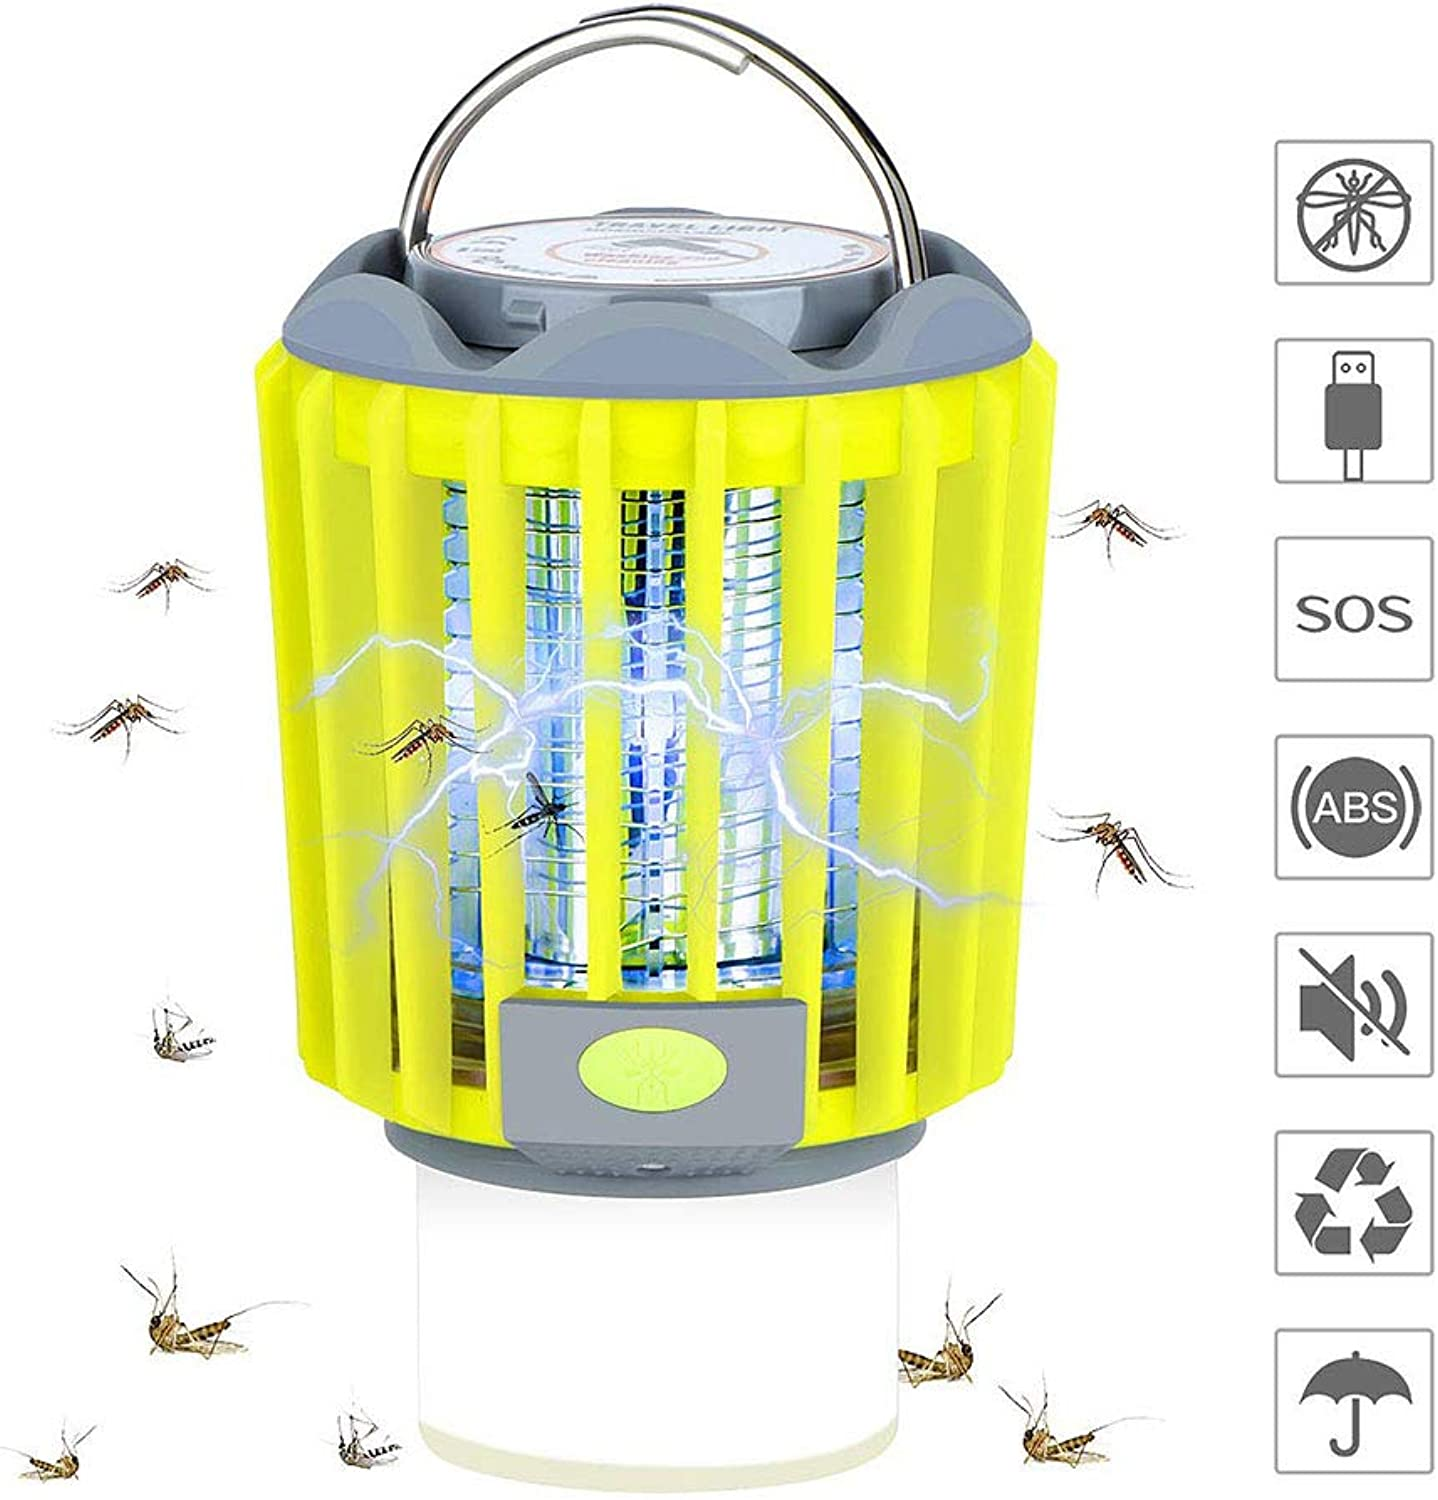 AWLLY 3 in 1 Mosquito killer lamp LED flashlight Camping light USB charging Waterproof IPX6 Electric shock portable Camping lamp Eliminate Mosquitoes